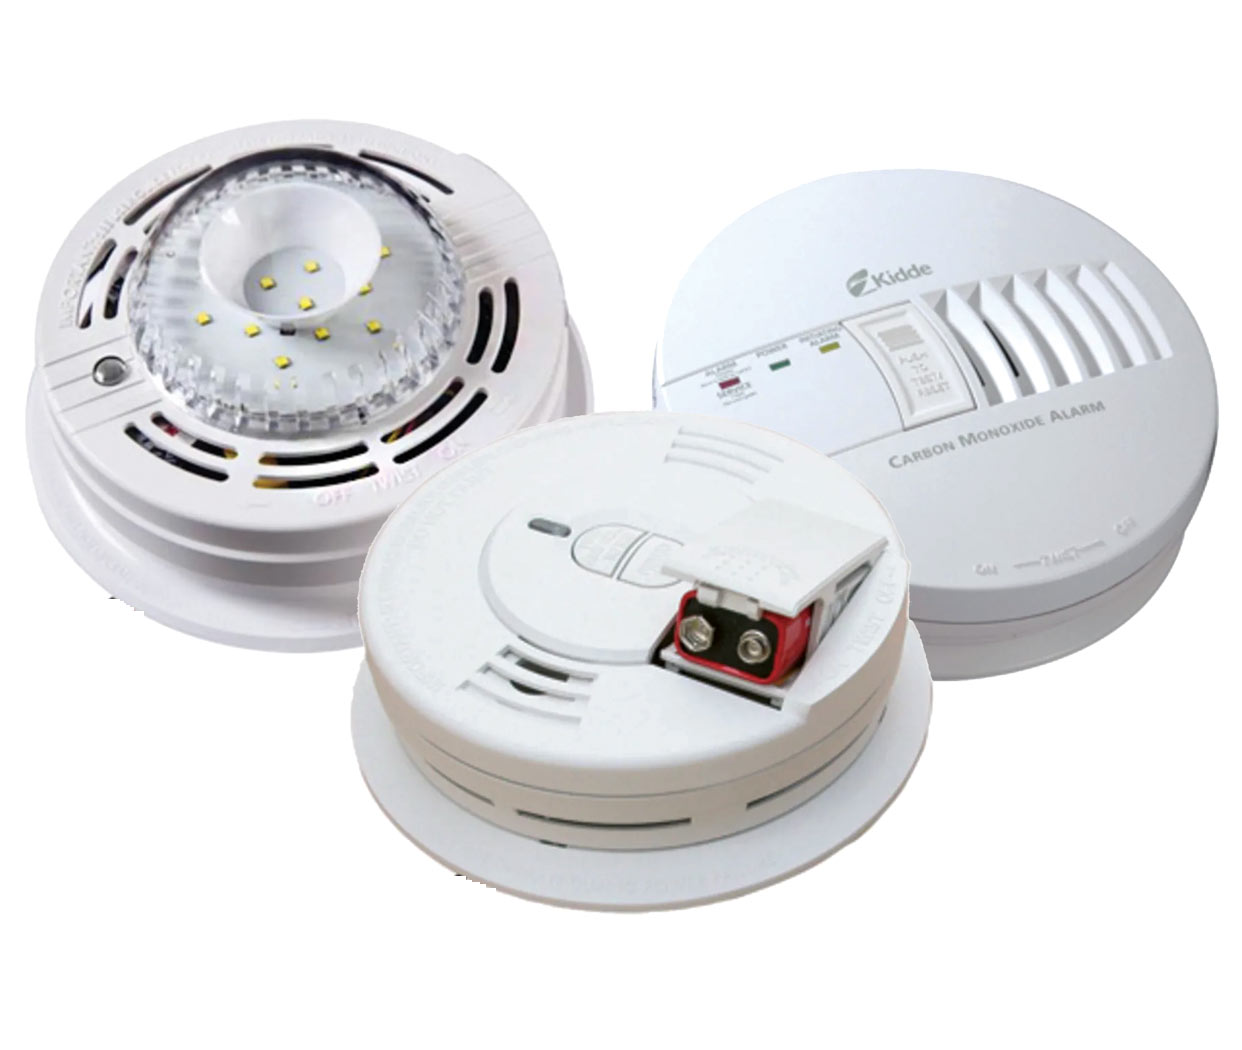 Kidde Carbon Monoxide and Smoke Alarms with Strobe Light